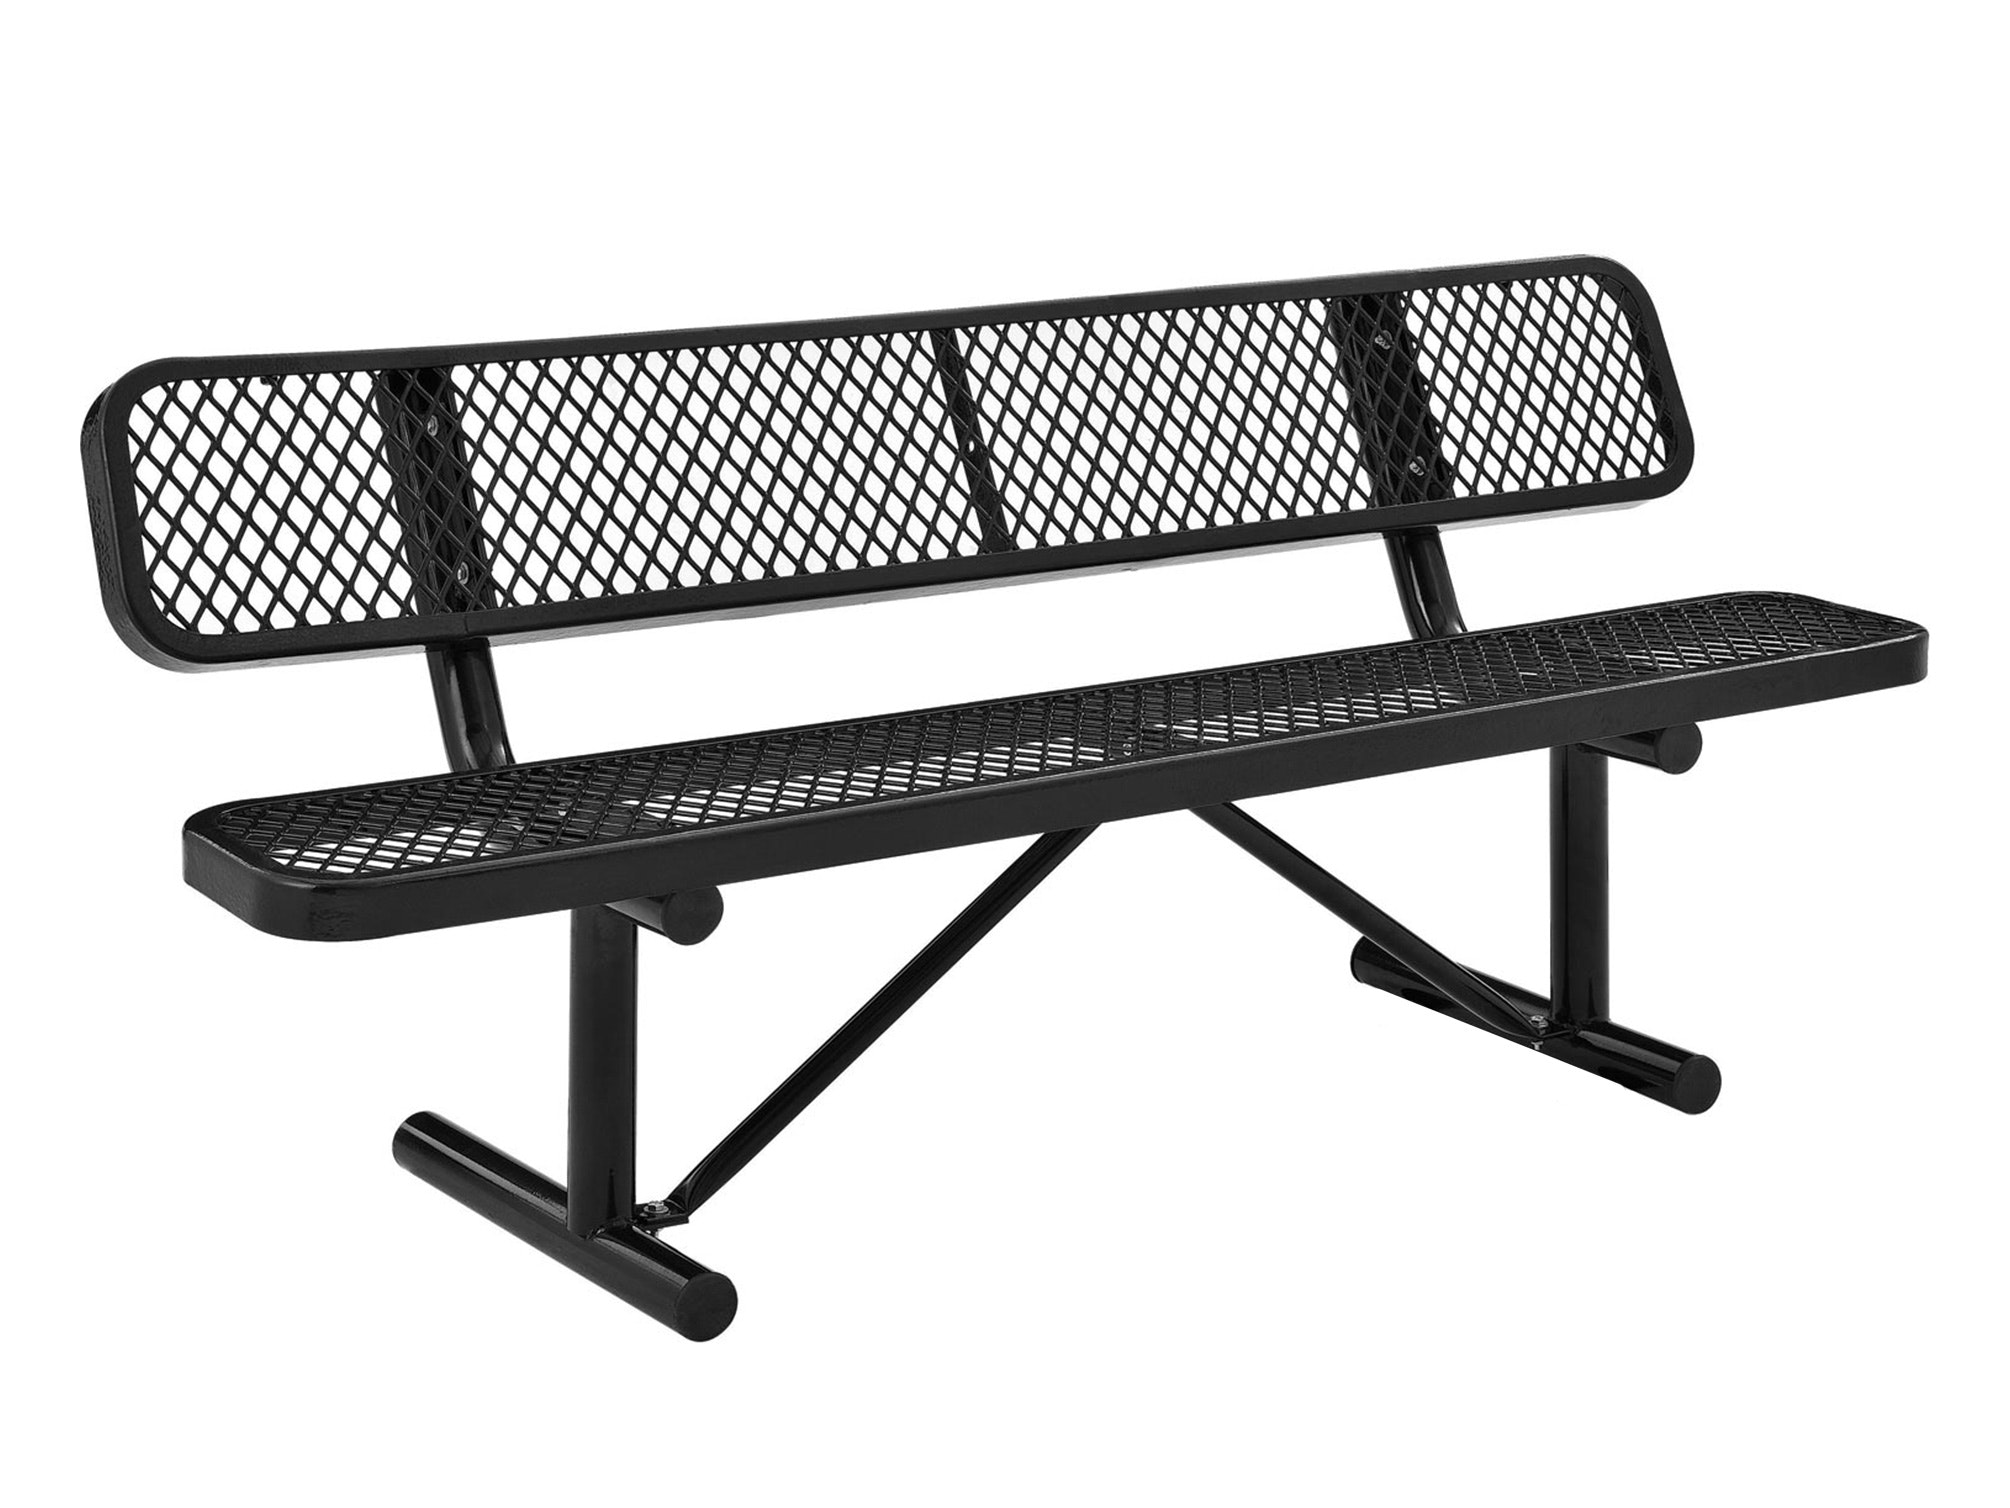 Park Bench 3 Seater - Black